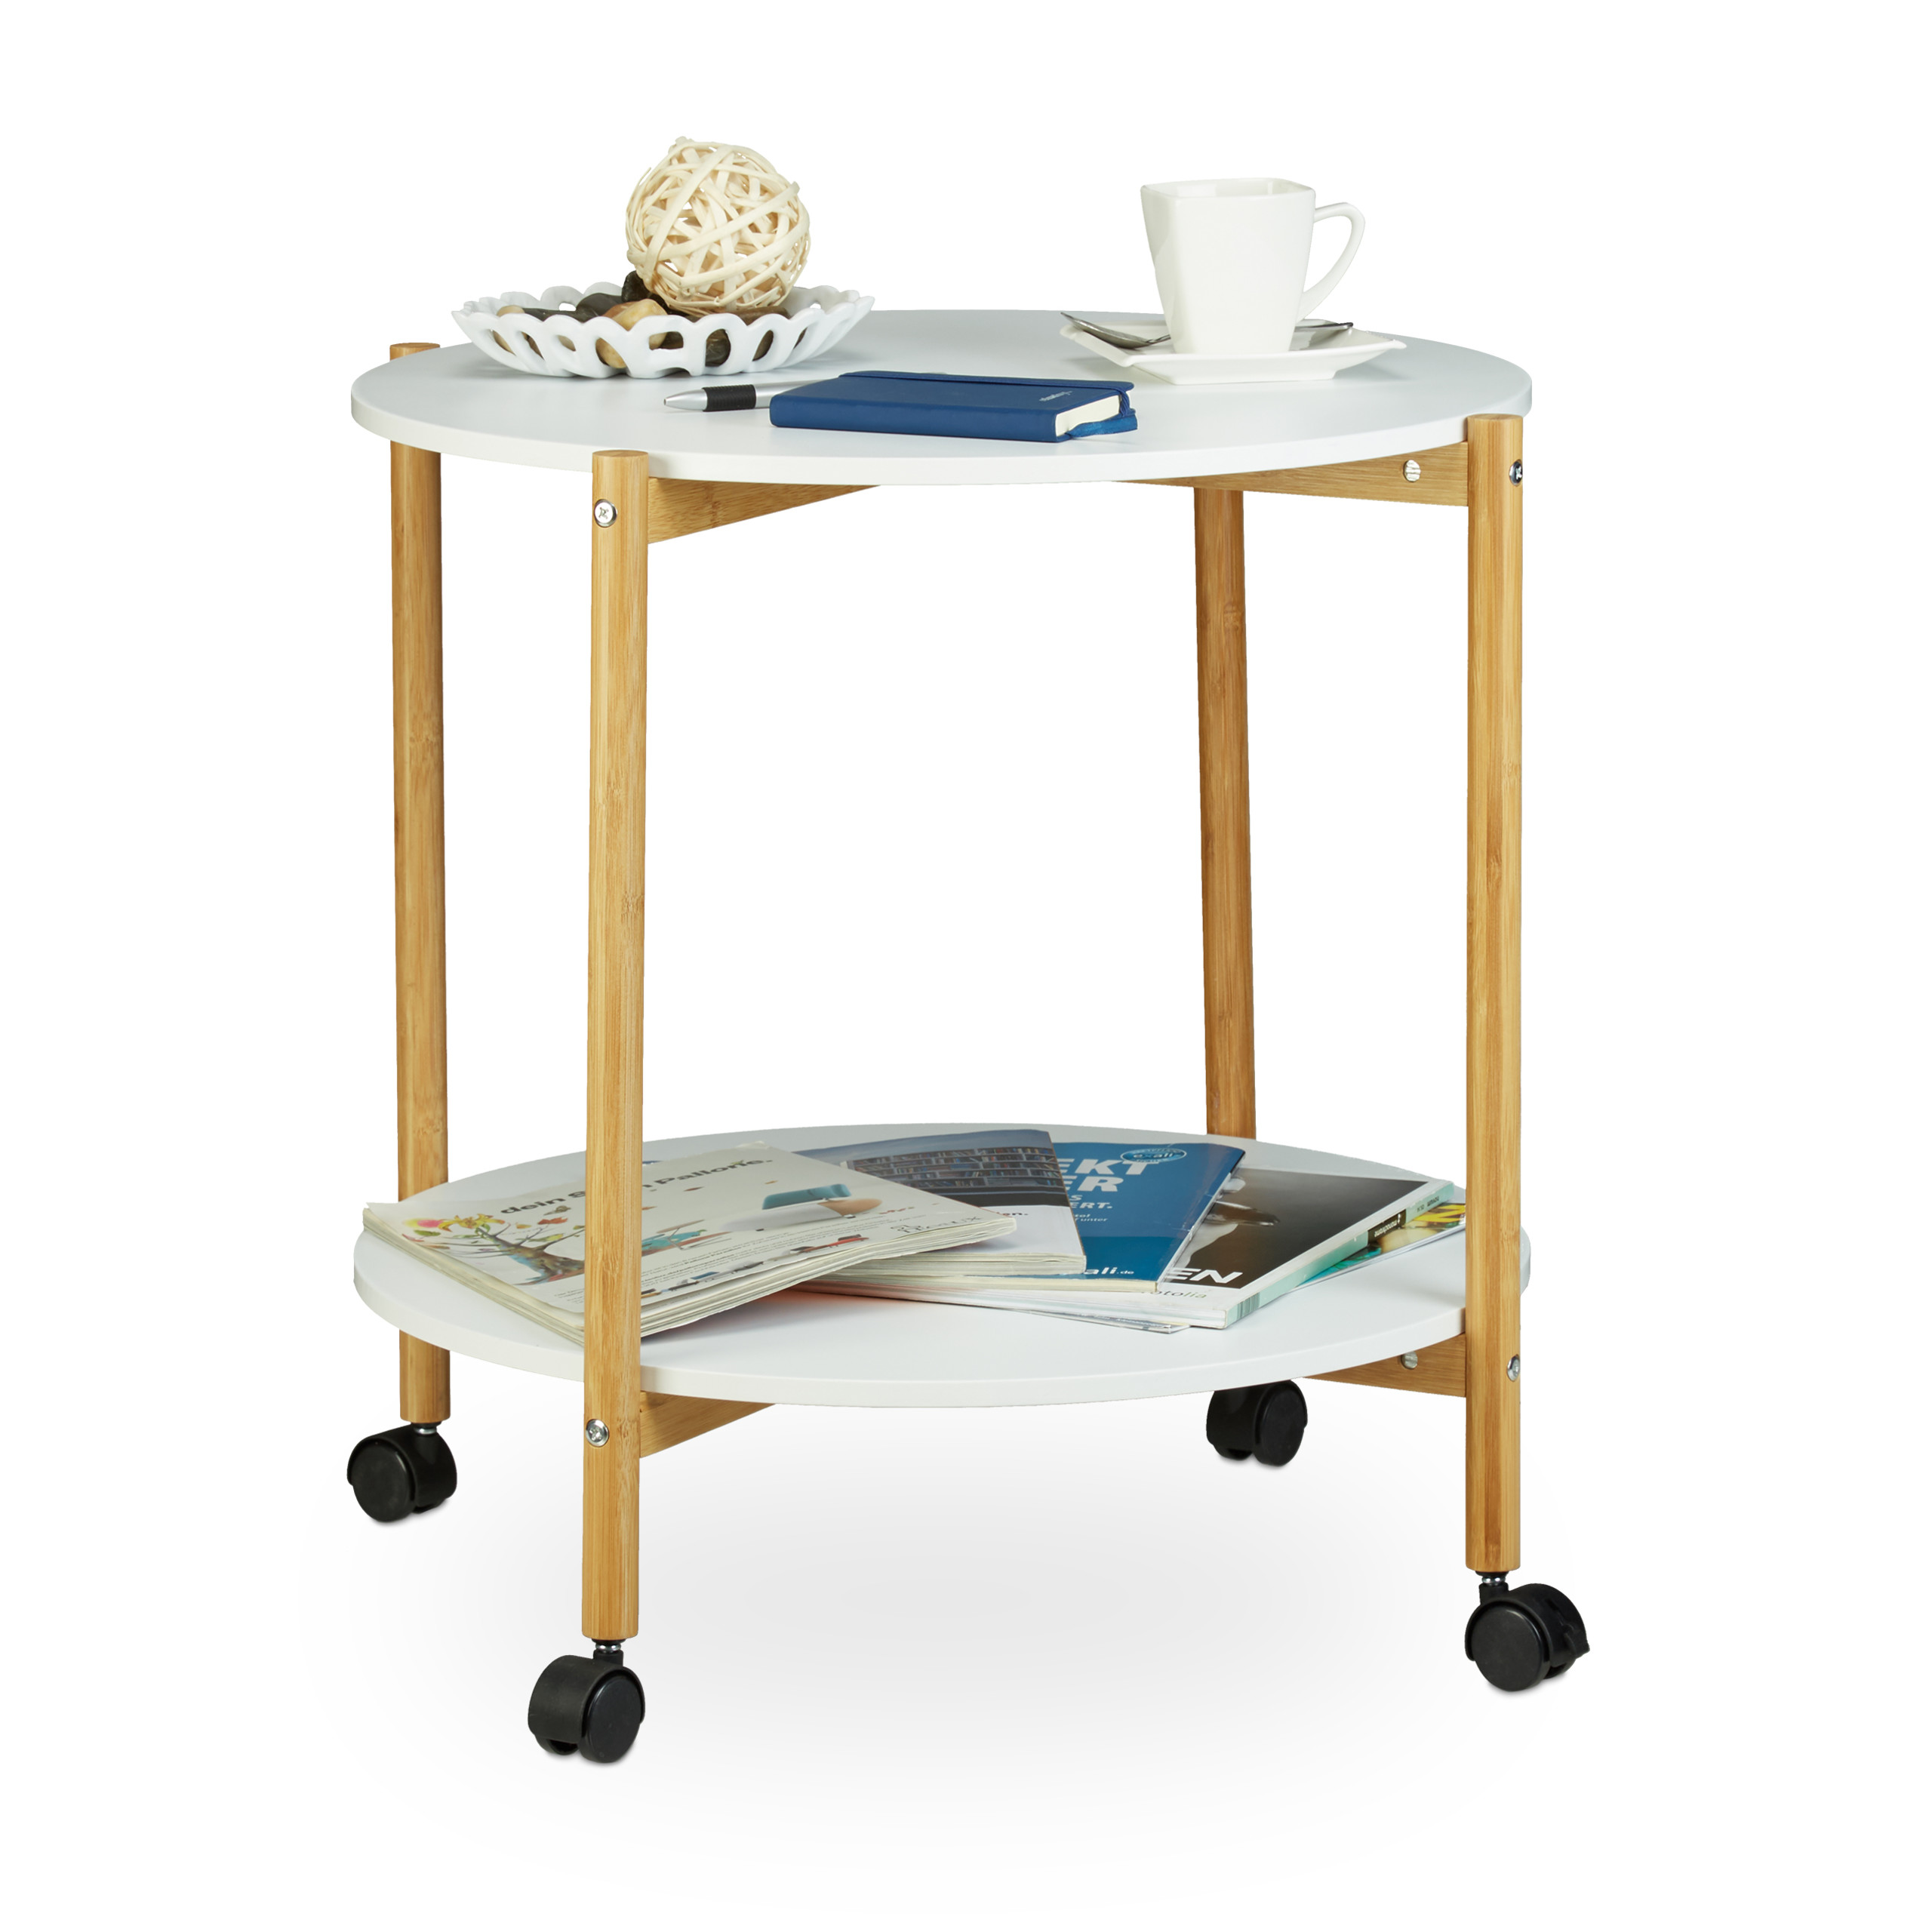 Side Table on Castors, White Wooden Table, Round Coffee Table, Wheels with Brake